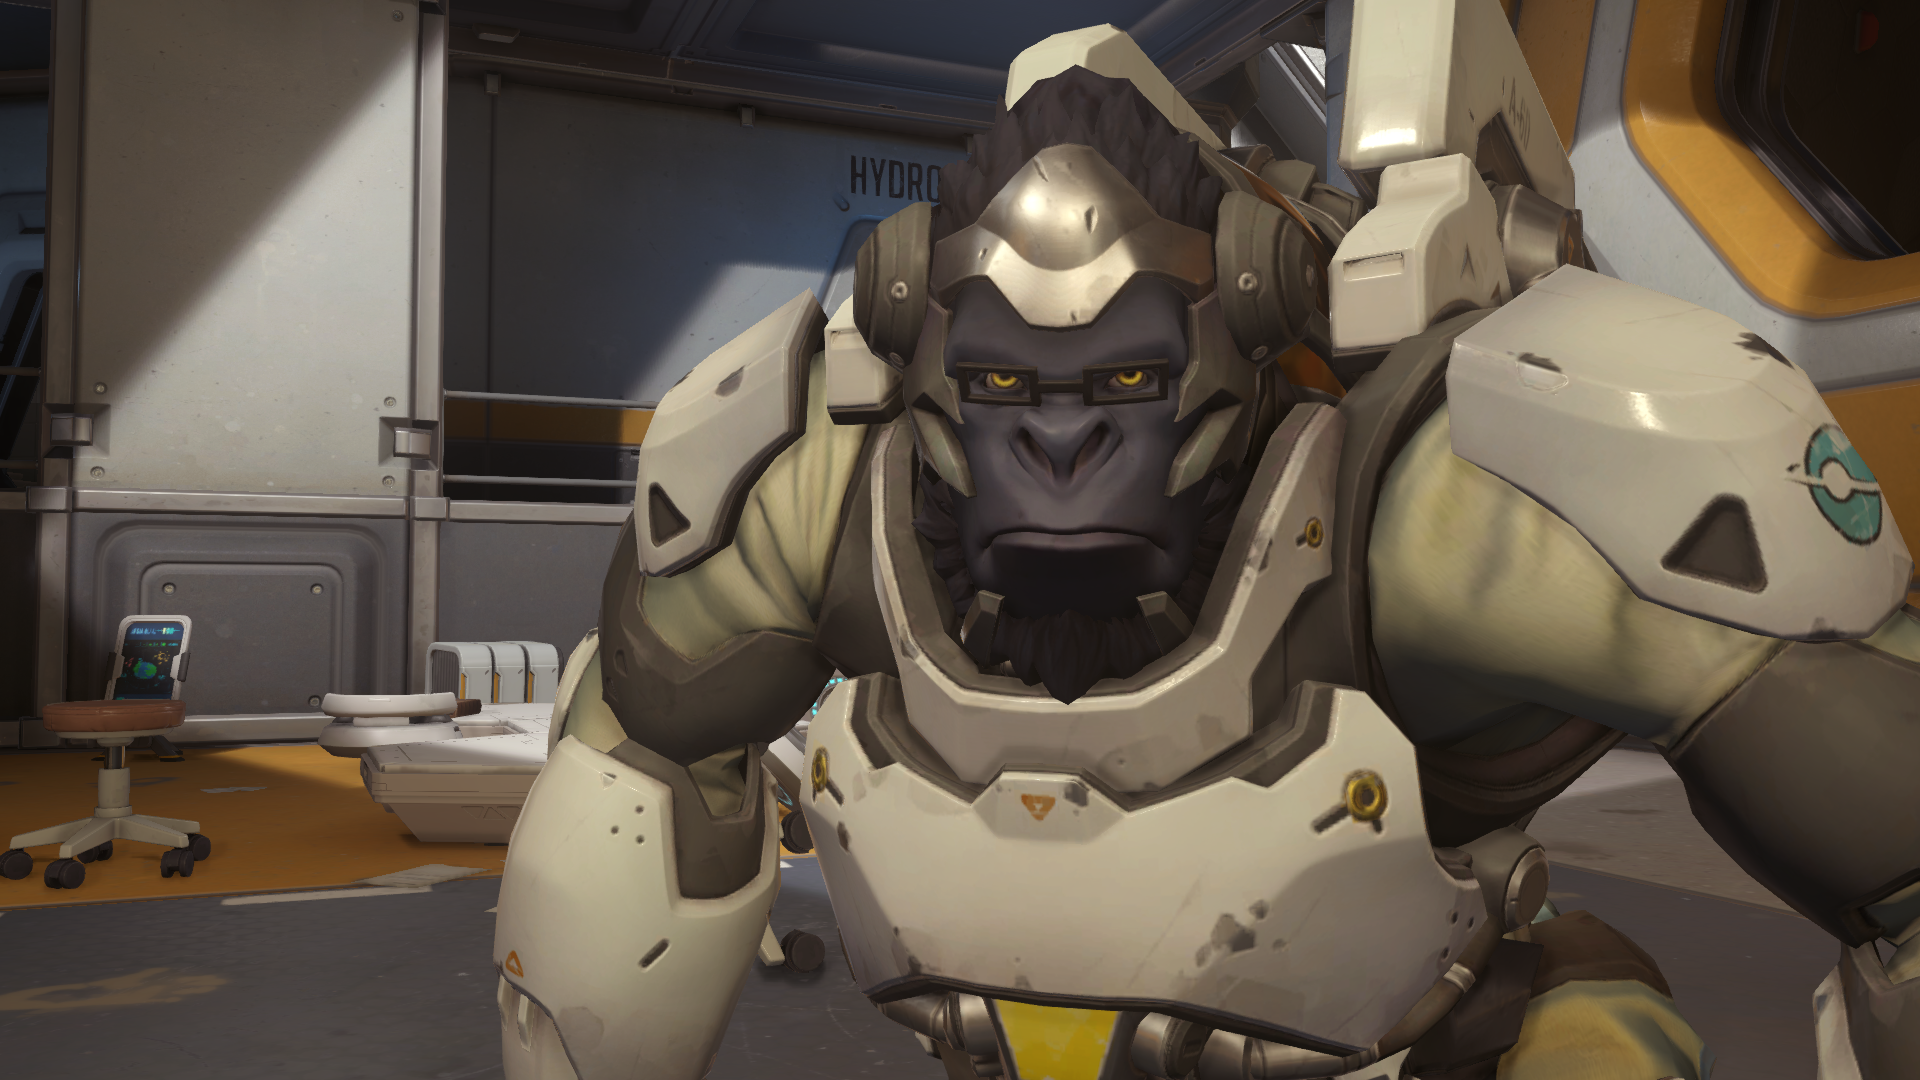 There are lots of secrets hidden in Overwatch's new Horizon Lunar